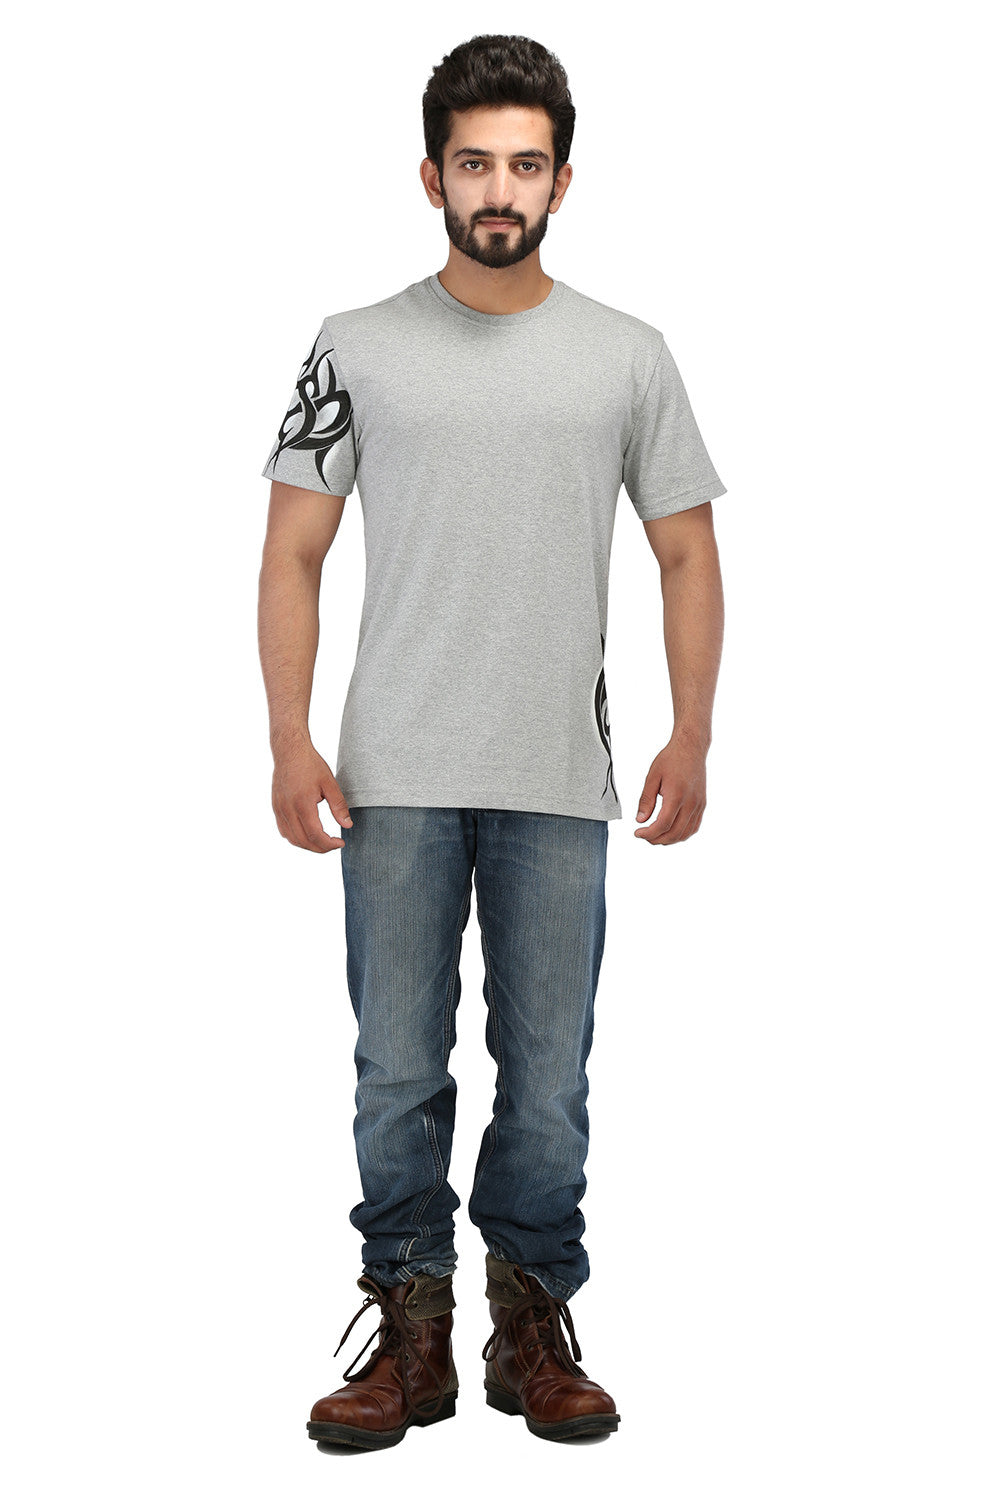 Hand-painted Tribal Muse Grey T-shirt - Rang Rage  - 4